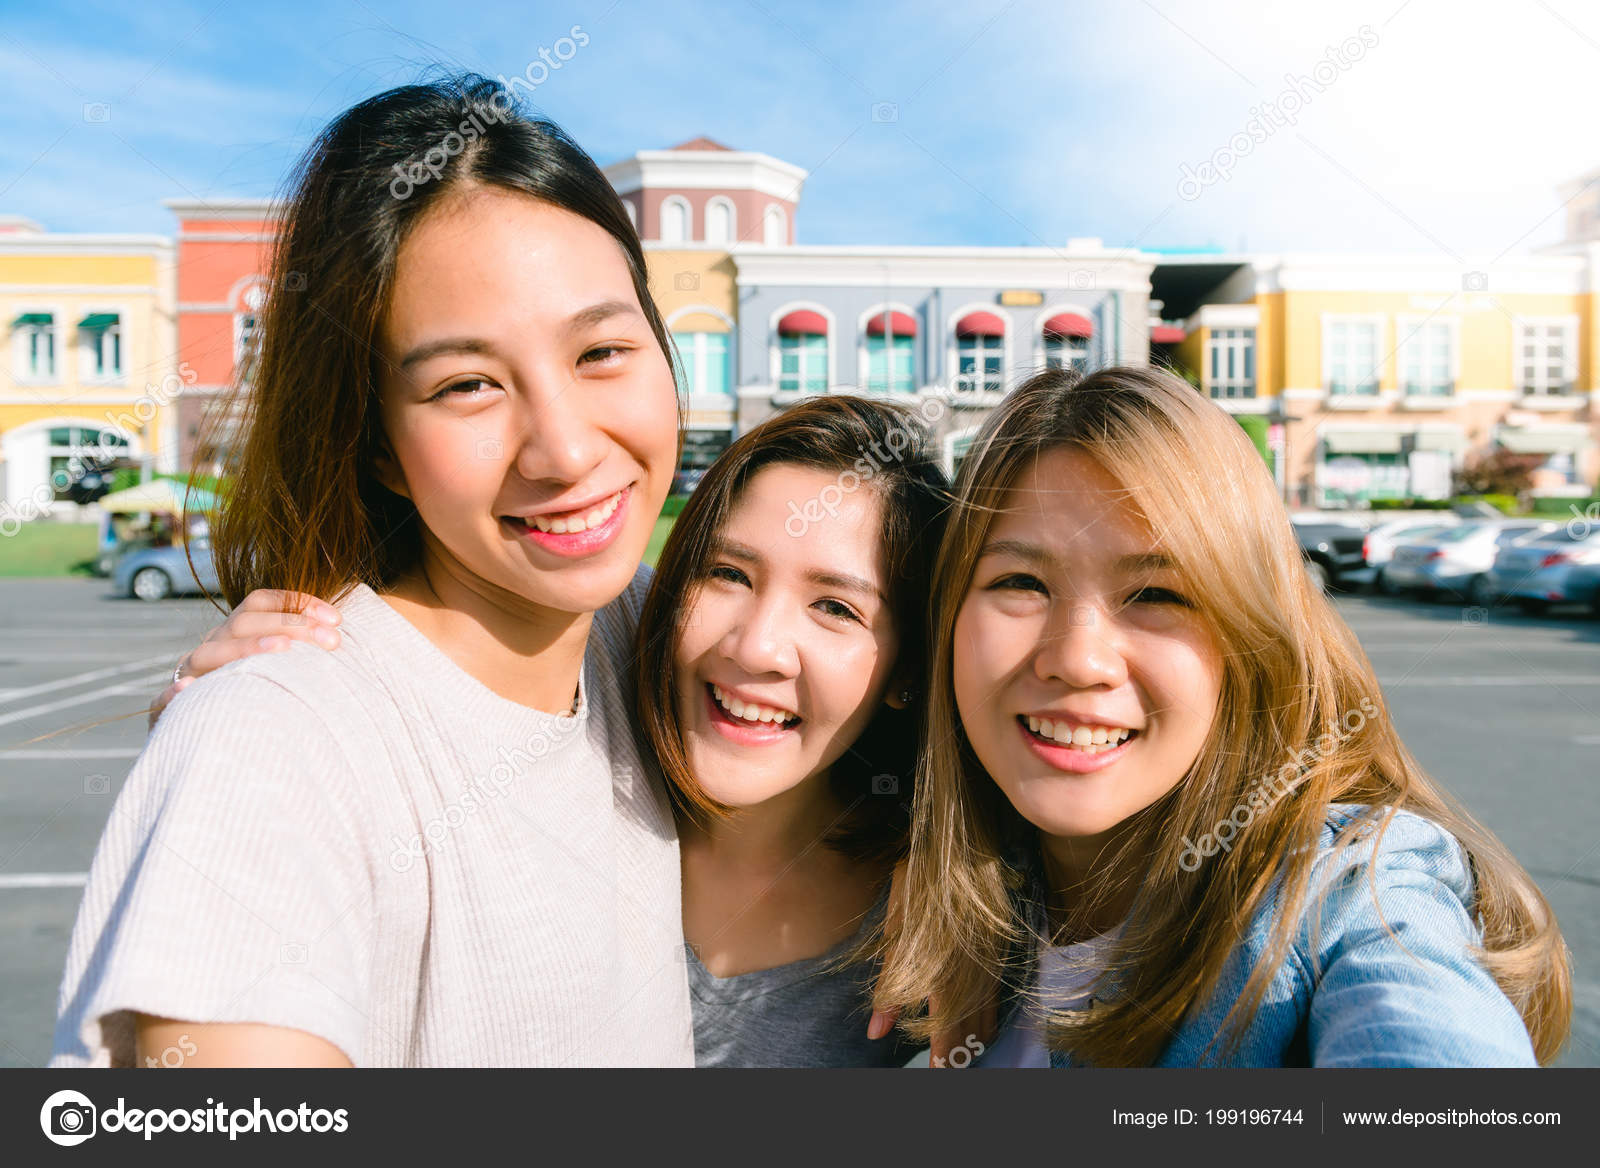 9a2afbdb52d Close up of young Asian women group selfie themselves in the pastel  buildings city in nice sky morning. City lifestyle of young women group on  weekend.